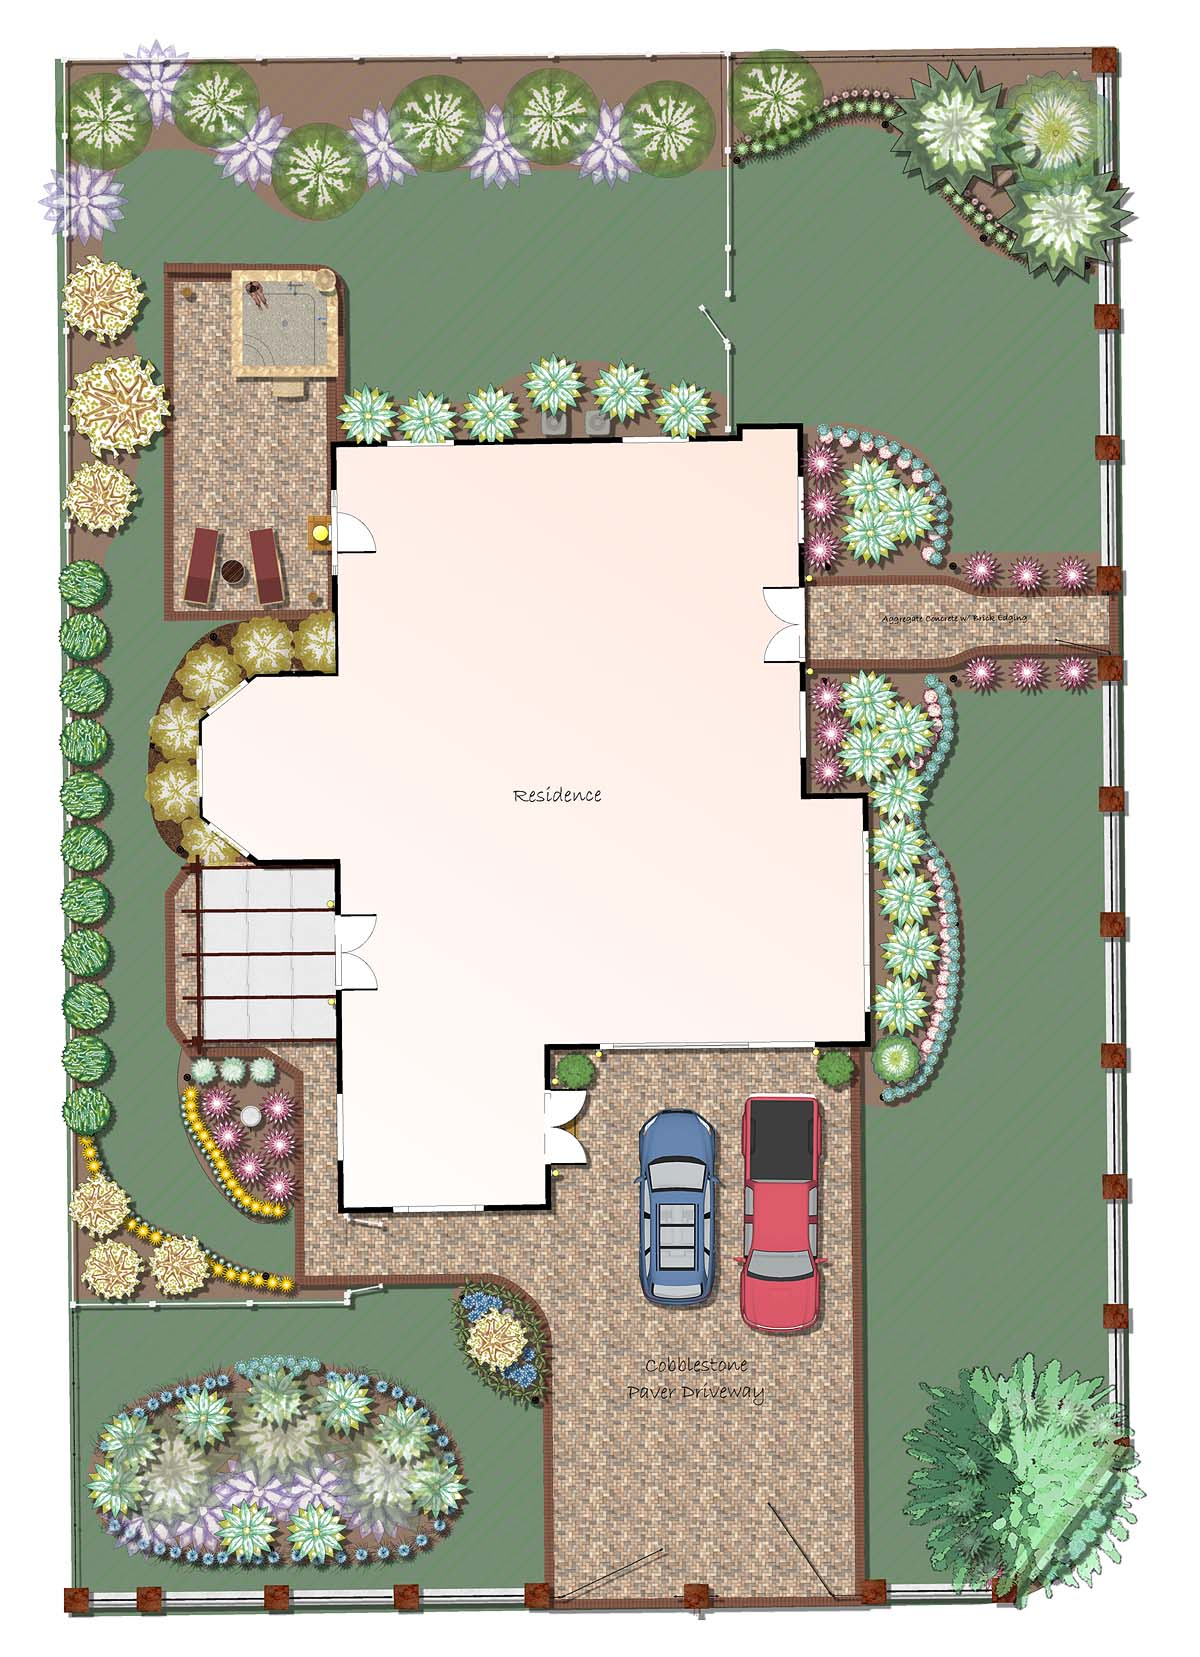 Professional landscape software for Outdoor plans and designs